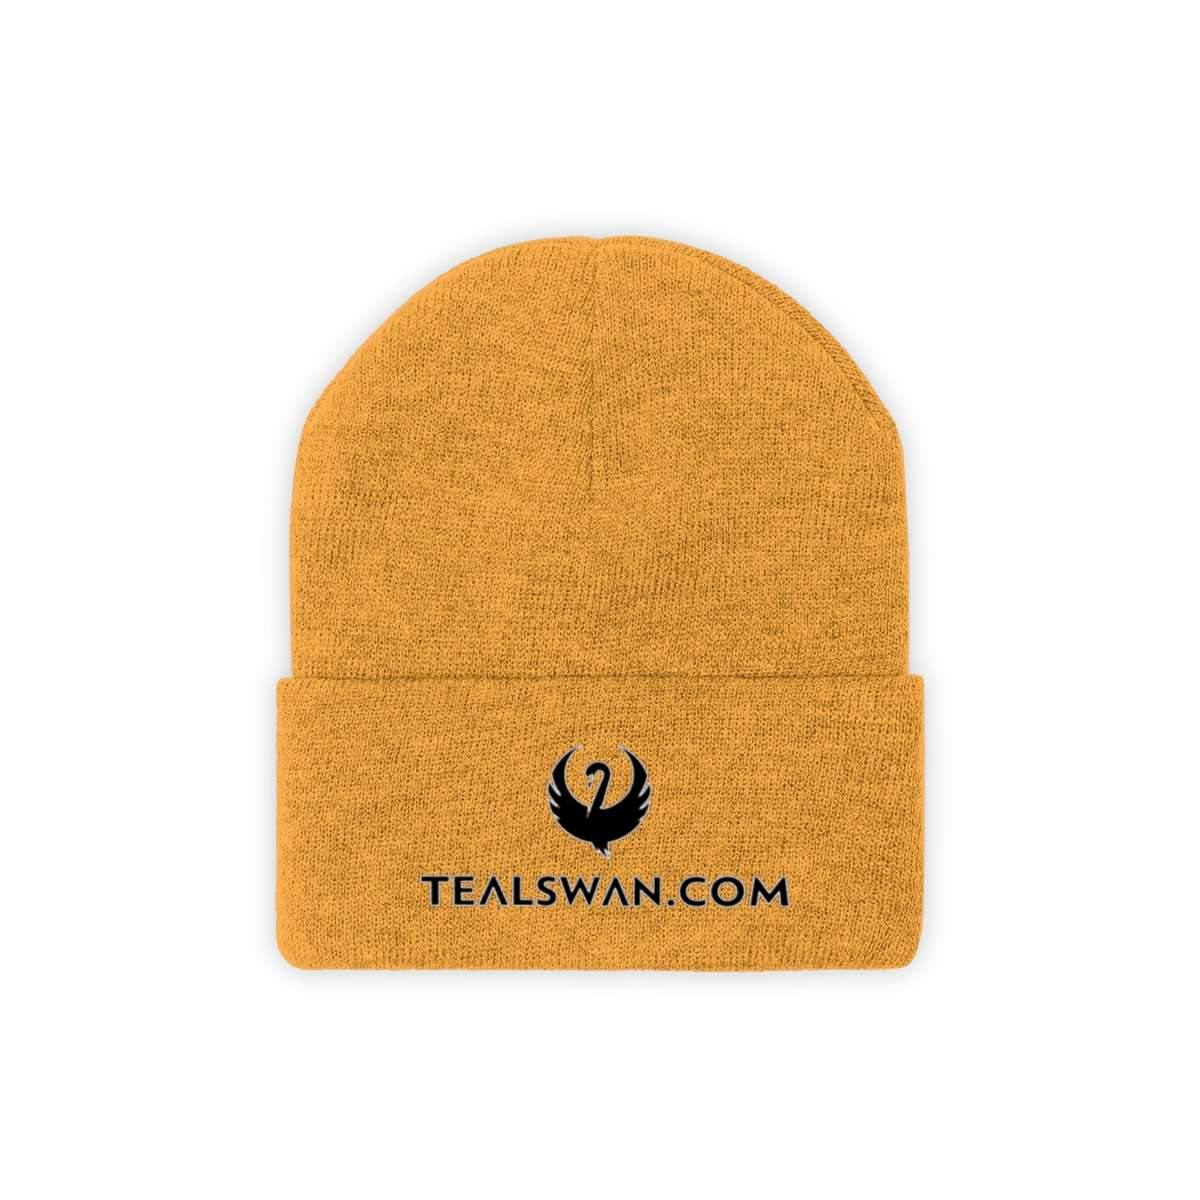 Teal Swan Official Beanie - Black Logo Color